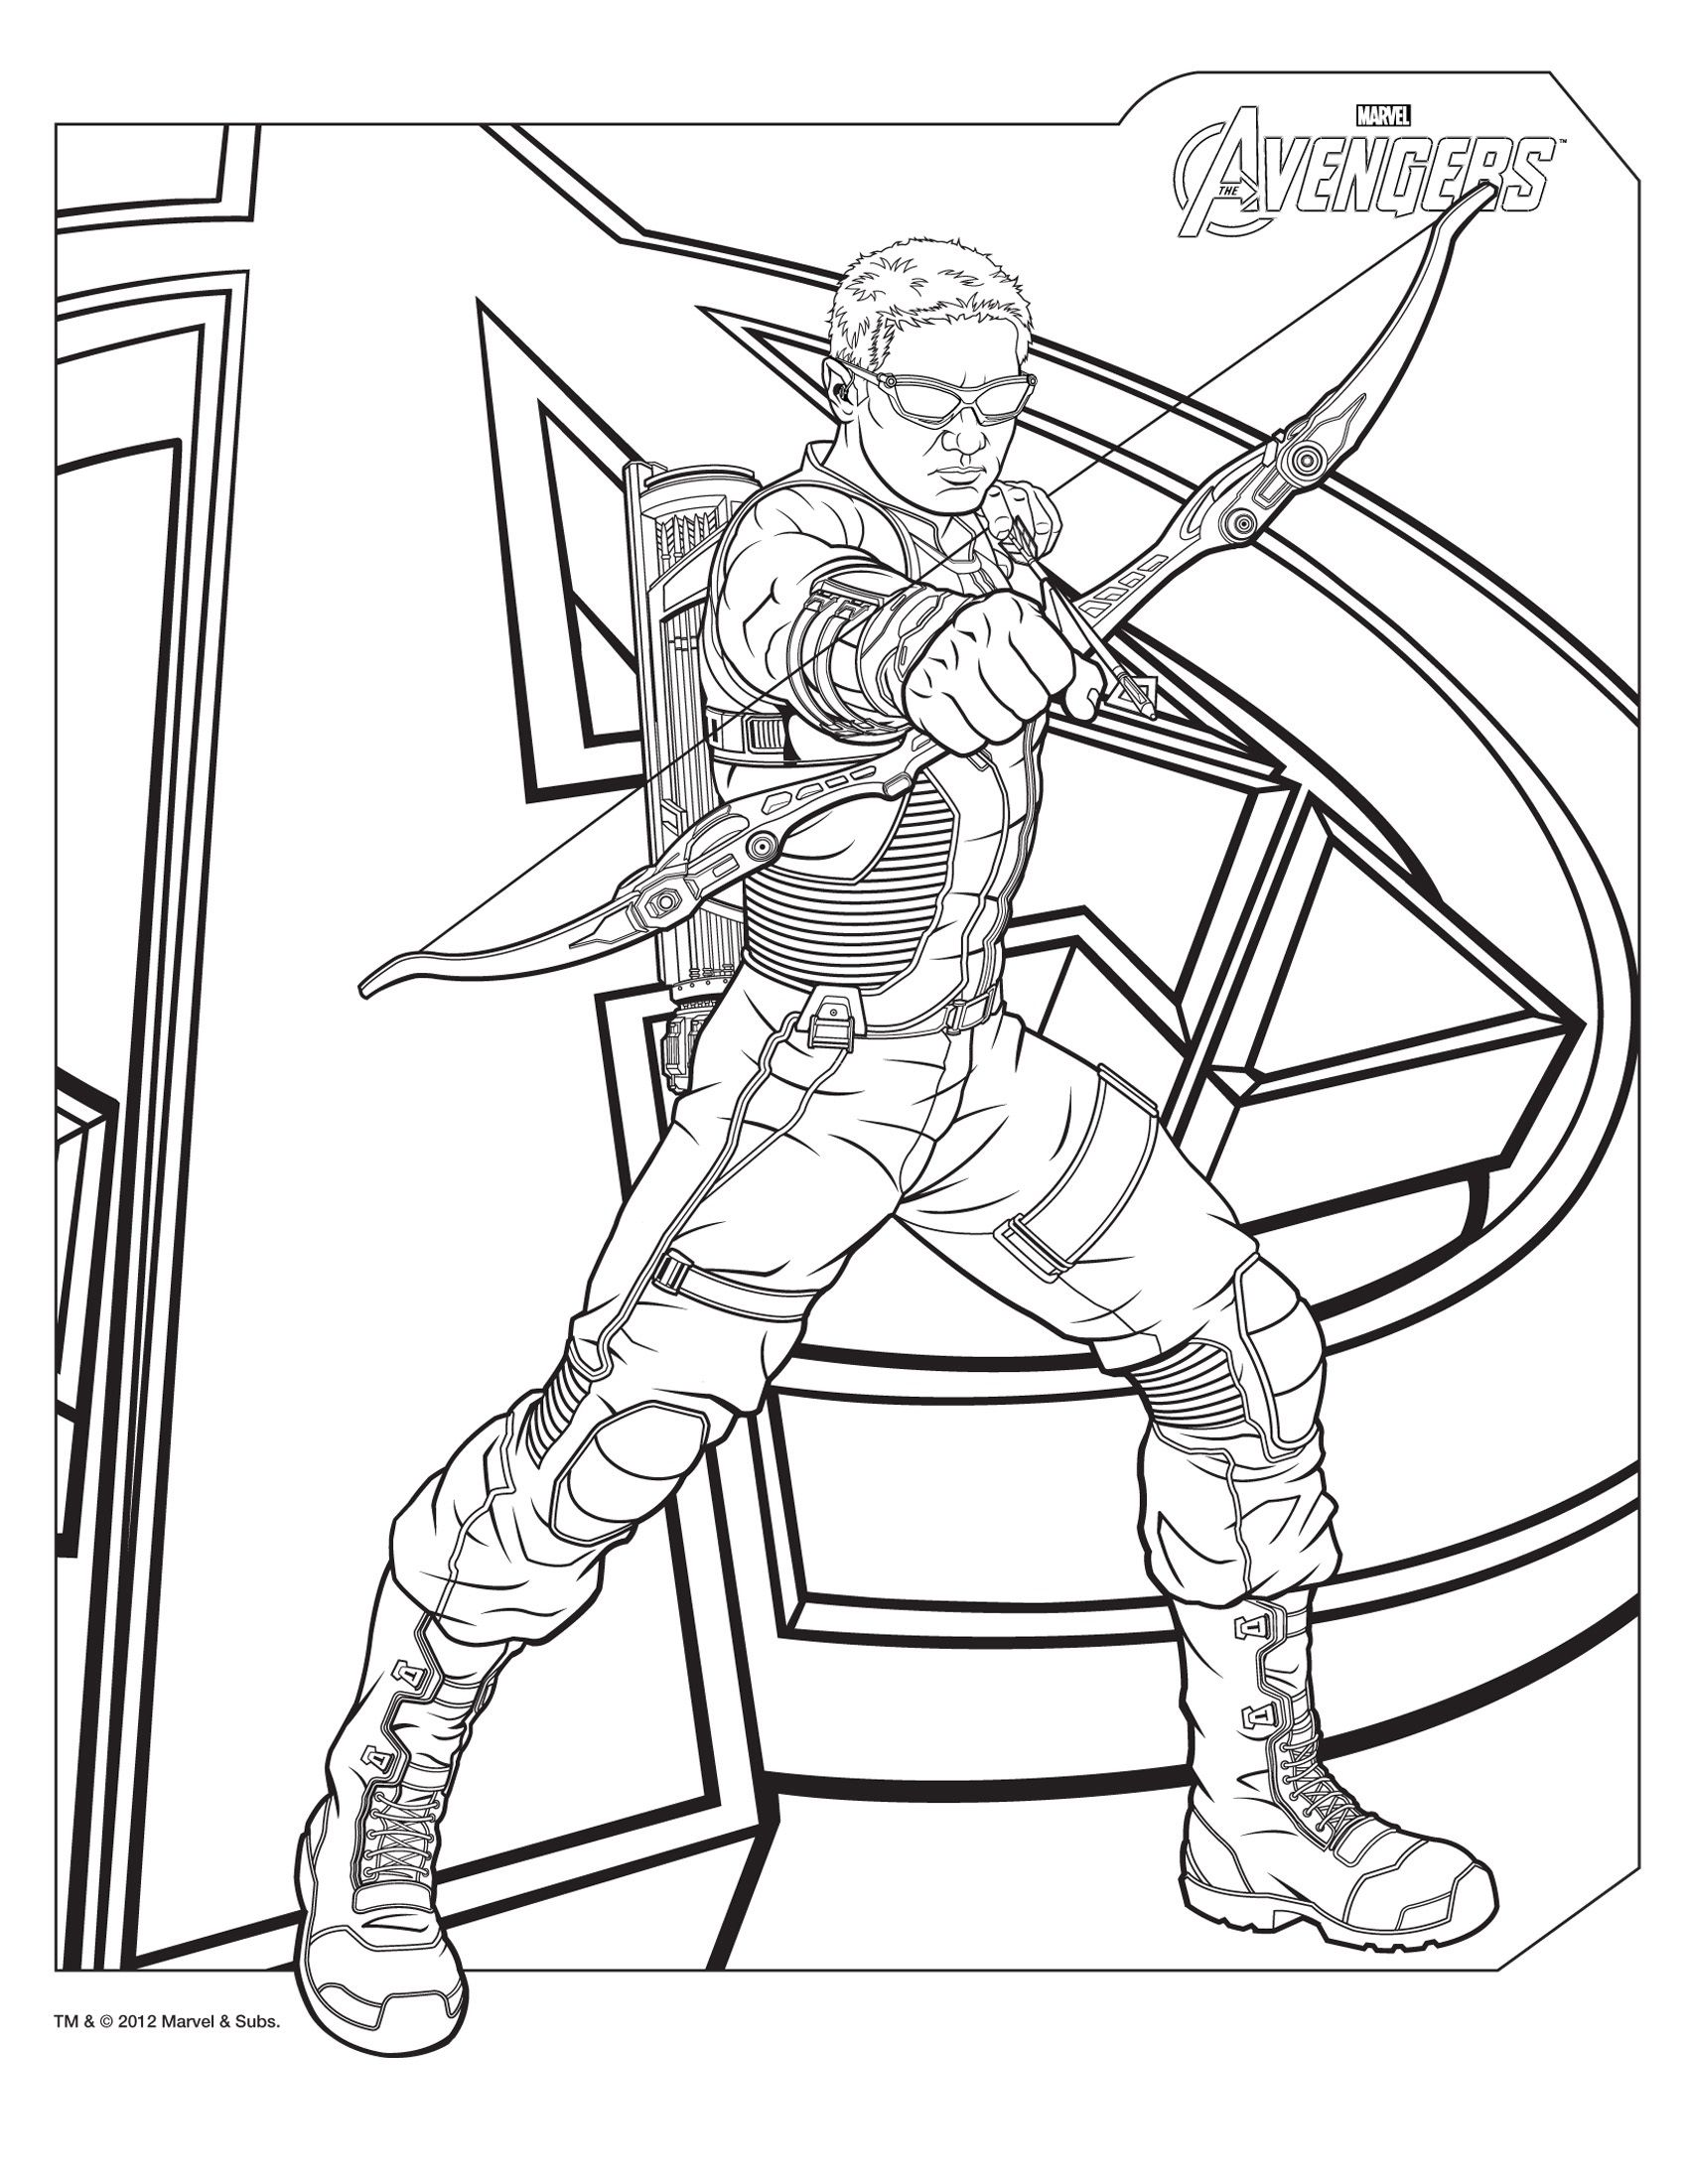 Hawkeye Avengers Coloring Pages